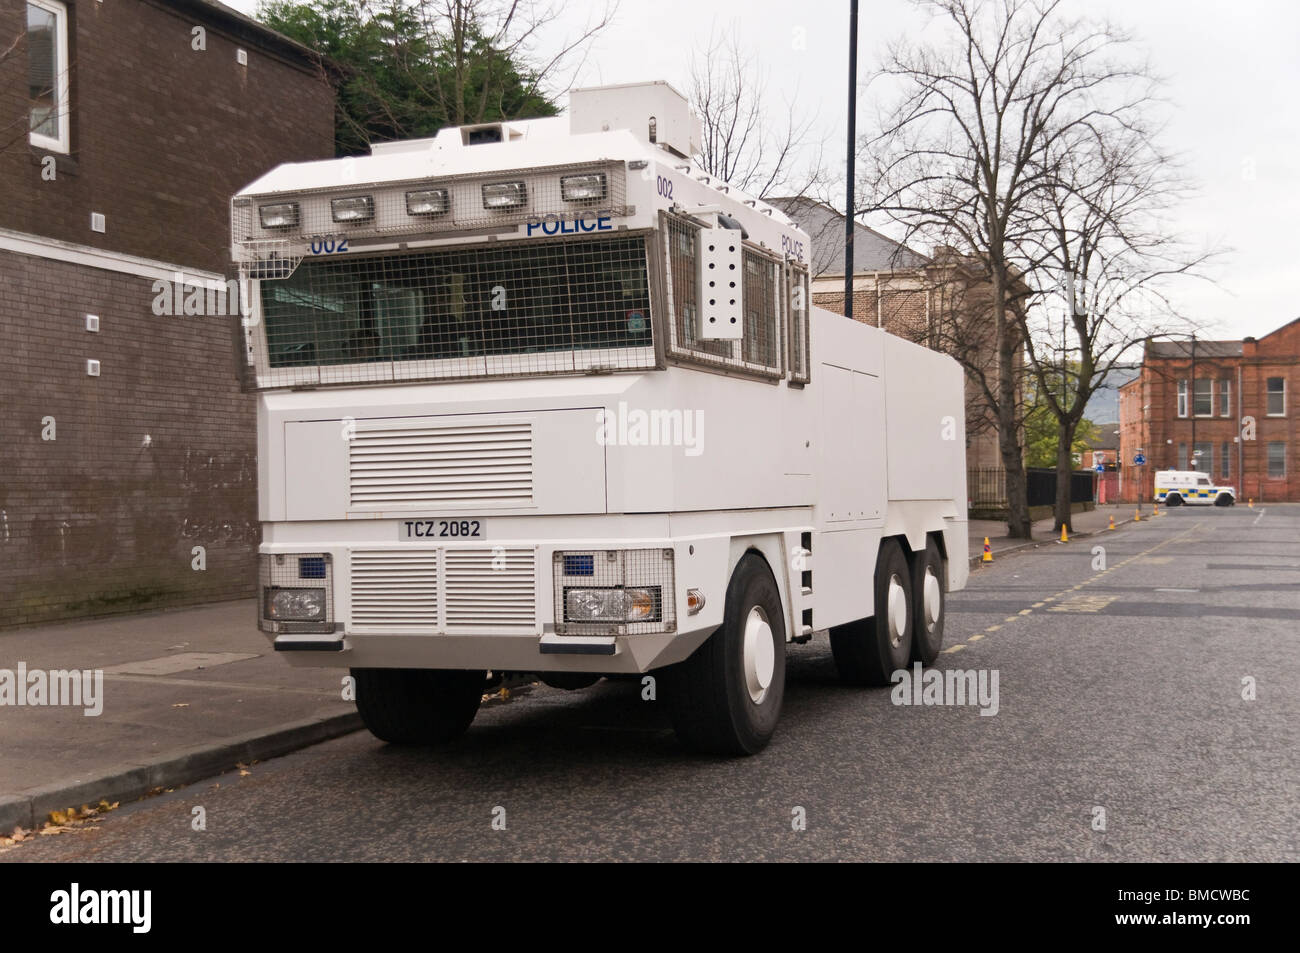 Front/side of a PSNI Police Water cannon vehicle - Stock Image